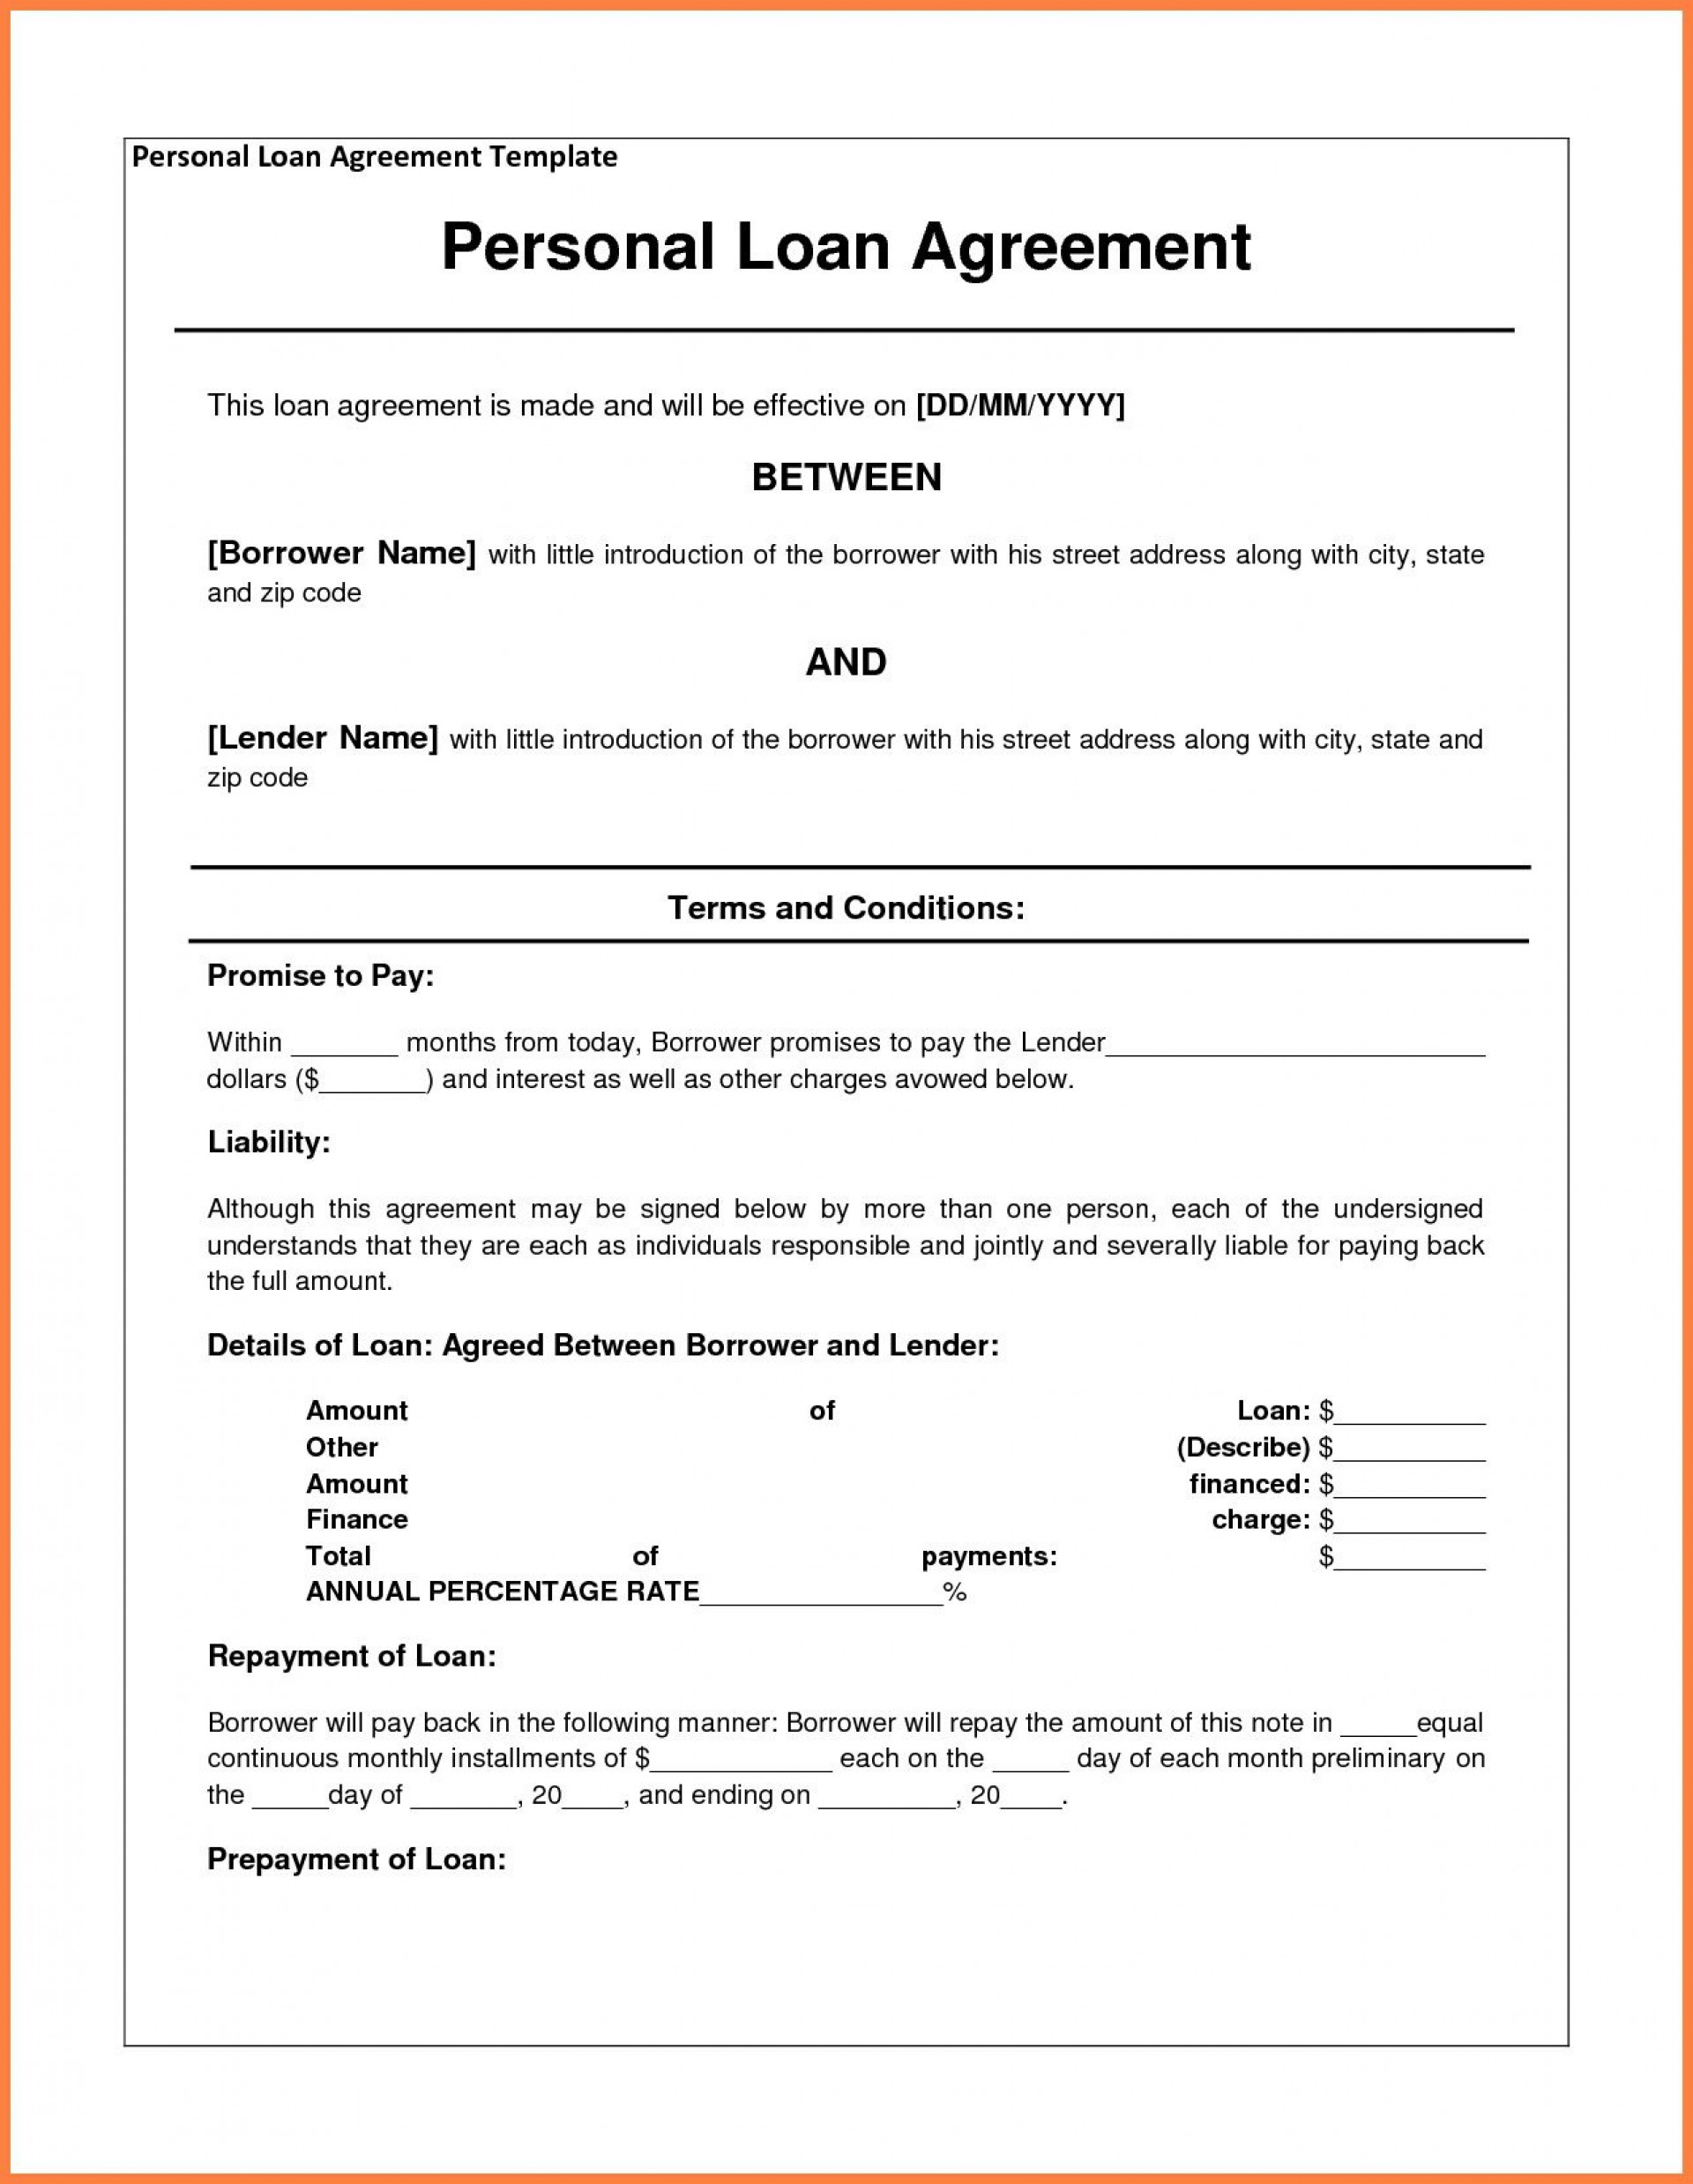 000 Staggering Family Loan Agreement Template Idea  Nz Uk Free1920